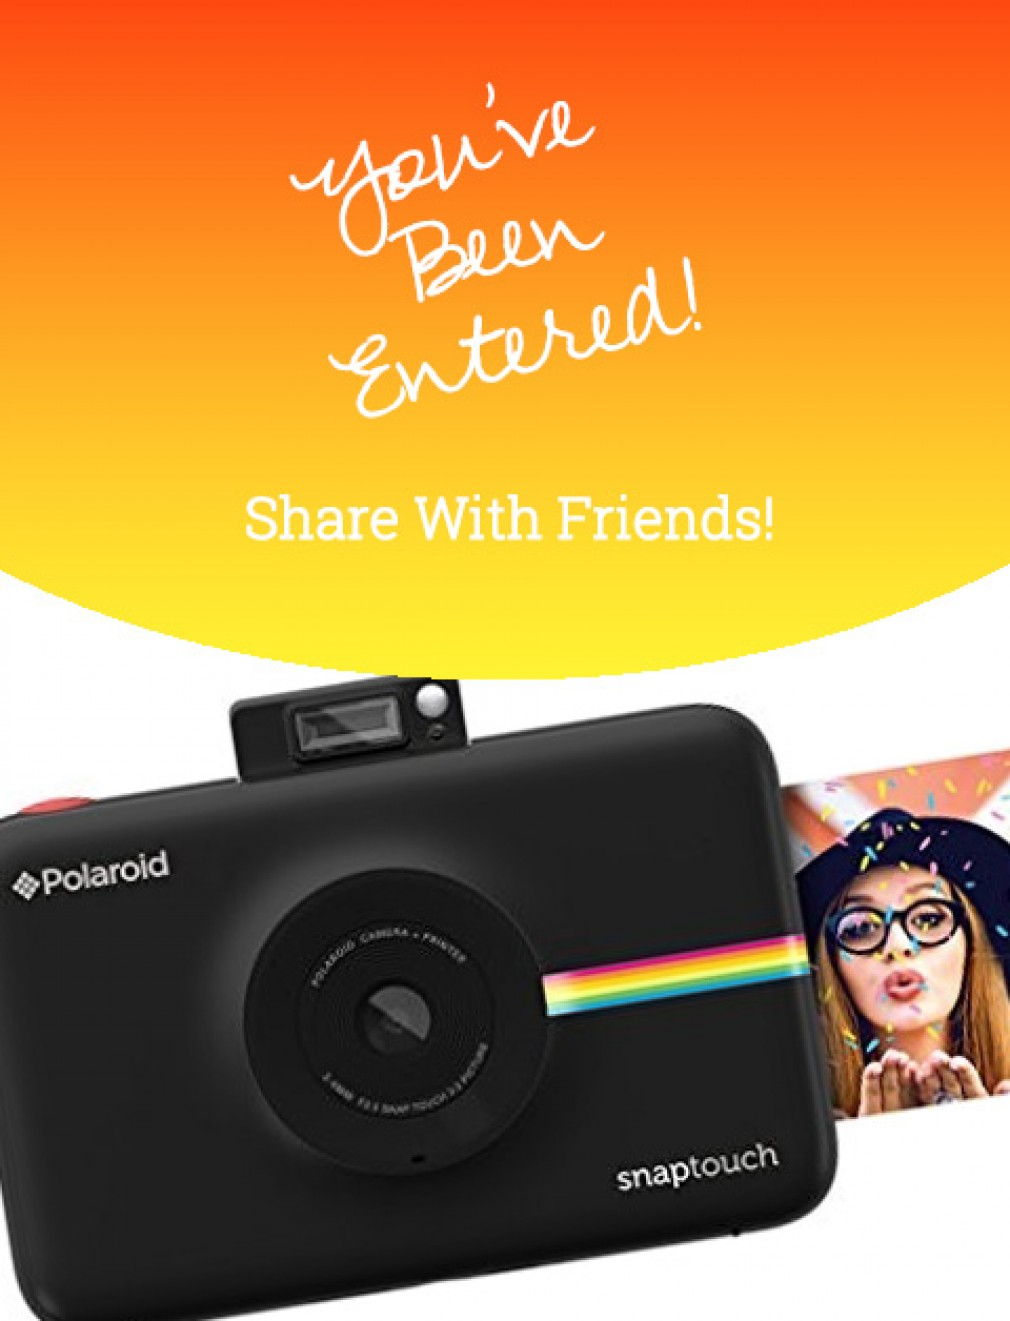 Polaroid Snap Instant Digital Camera July 2018 Giveaway